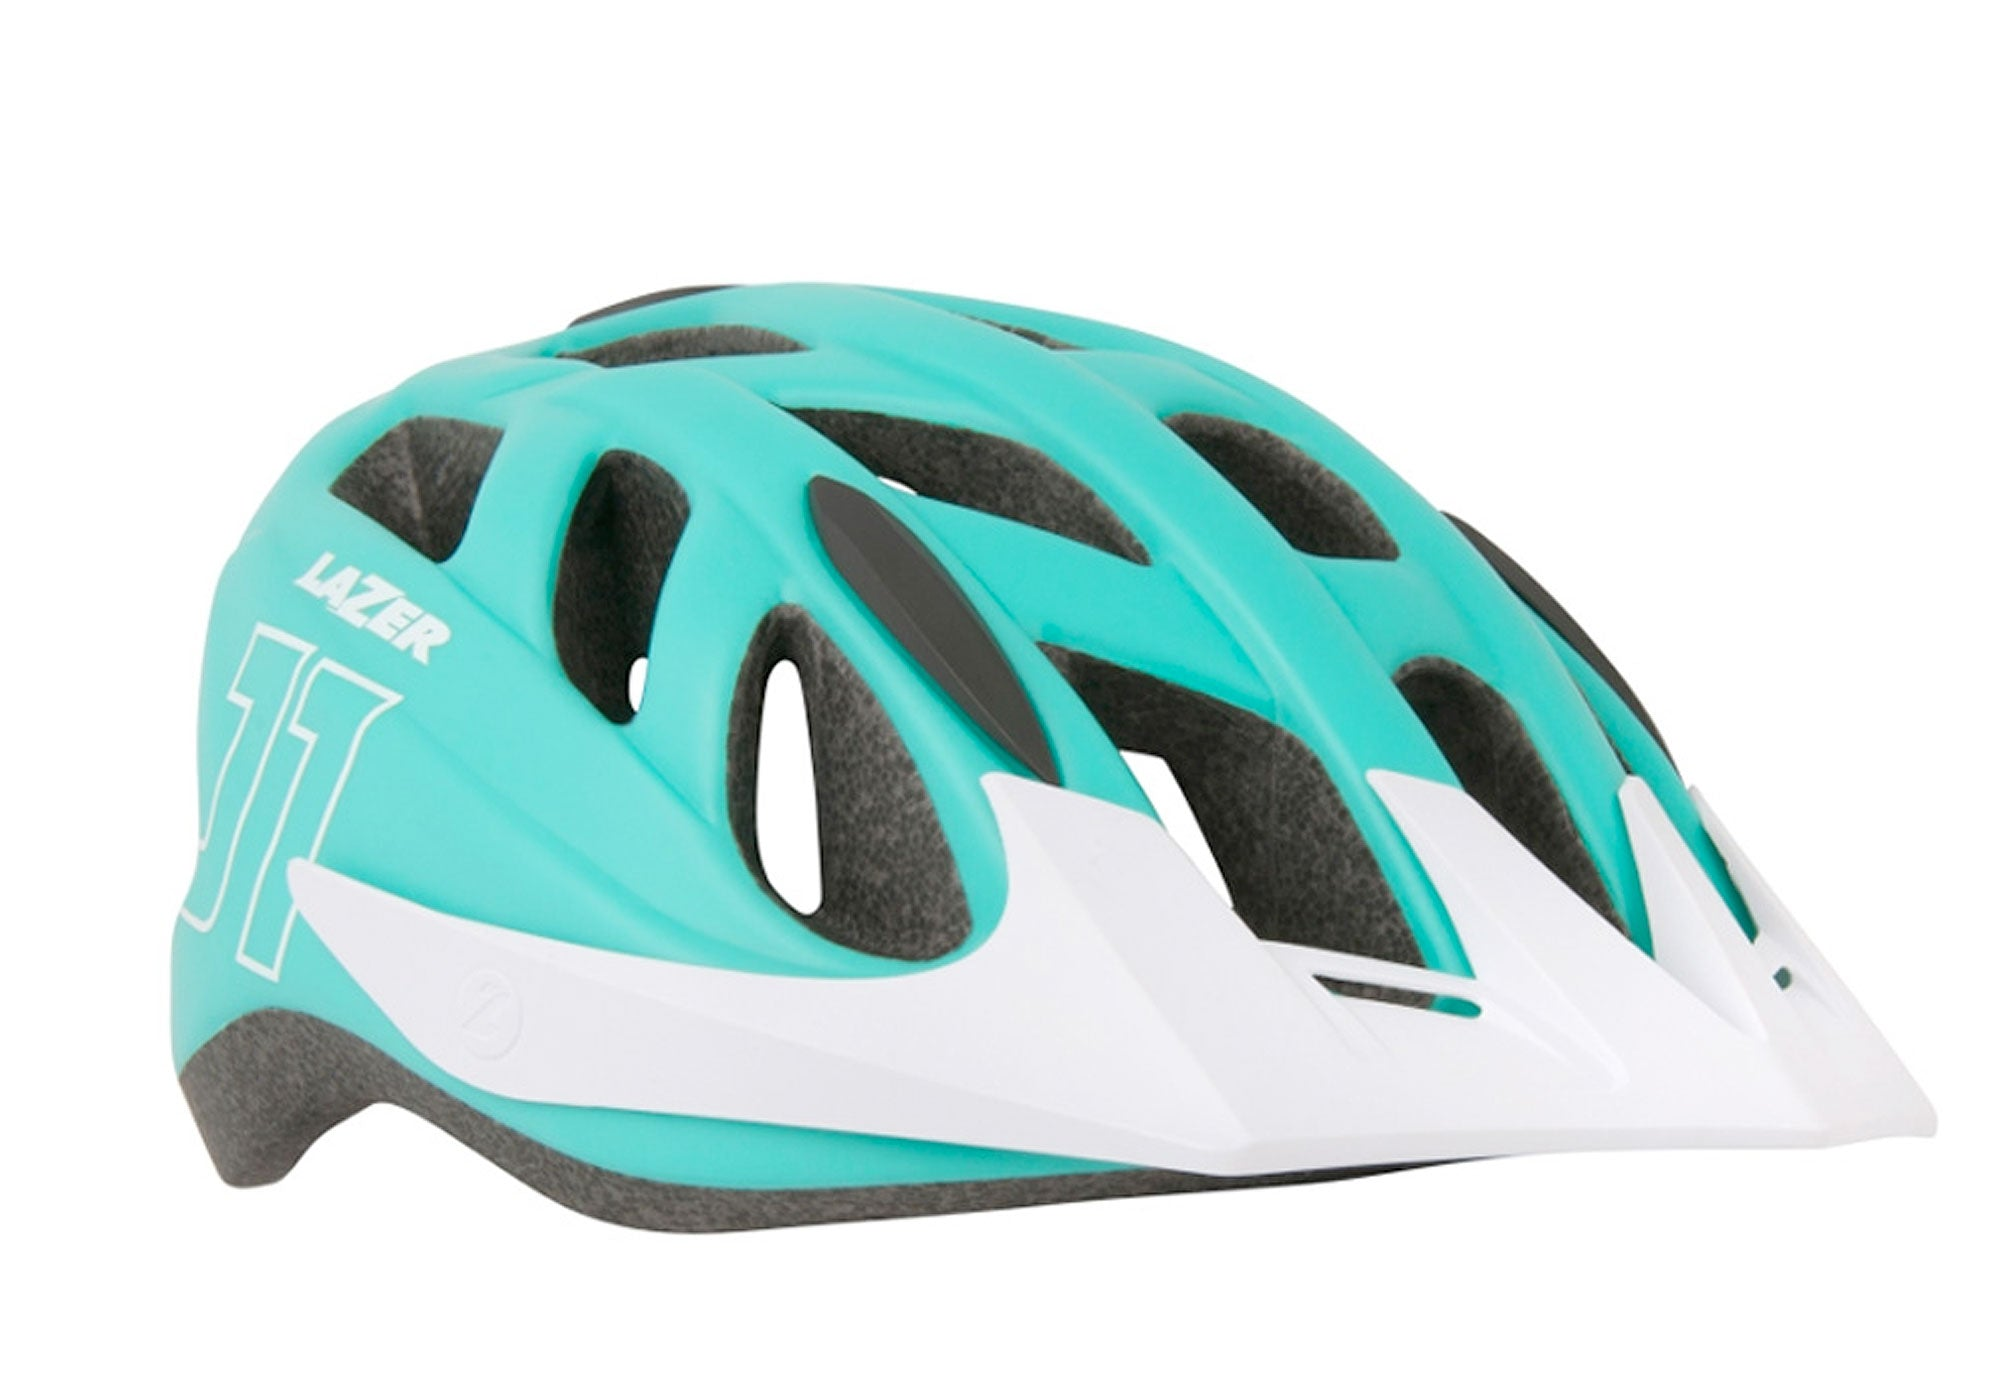 Lazer J1 Youth Helmet, Matt Green/White, Woolys Wheels, Sydney